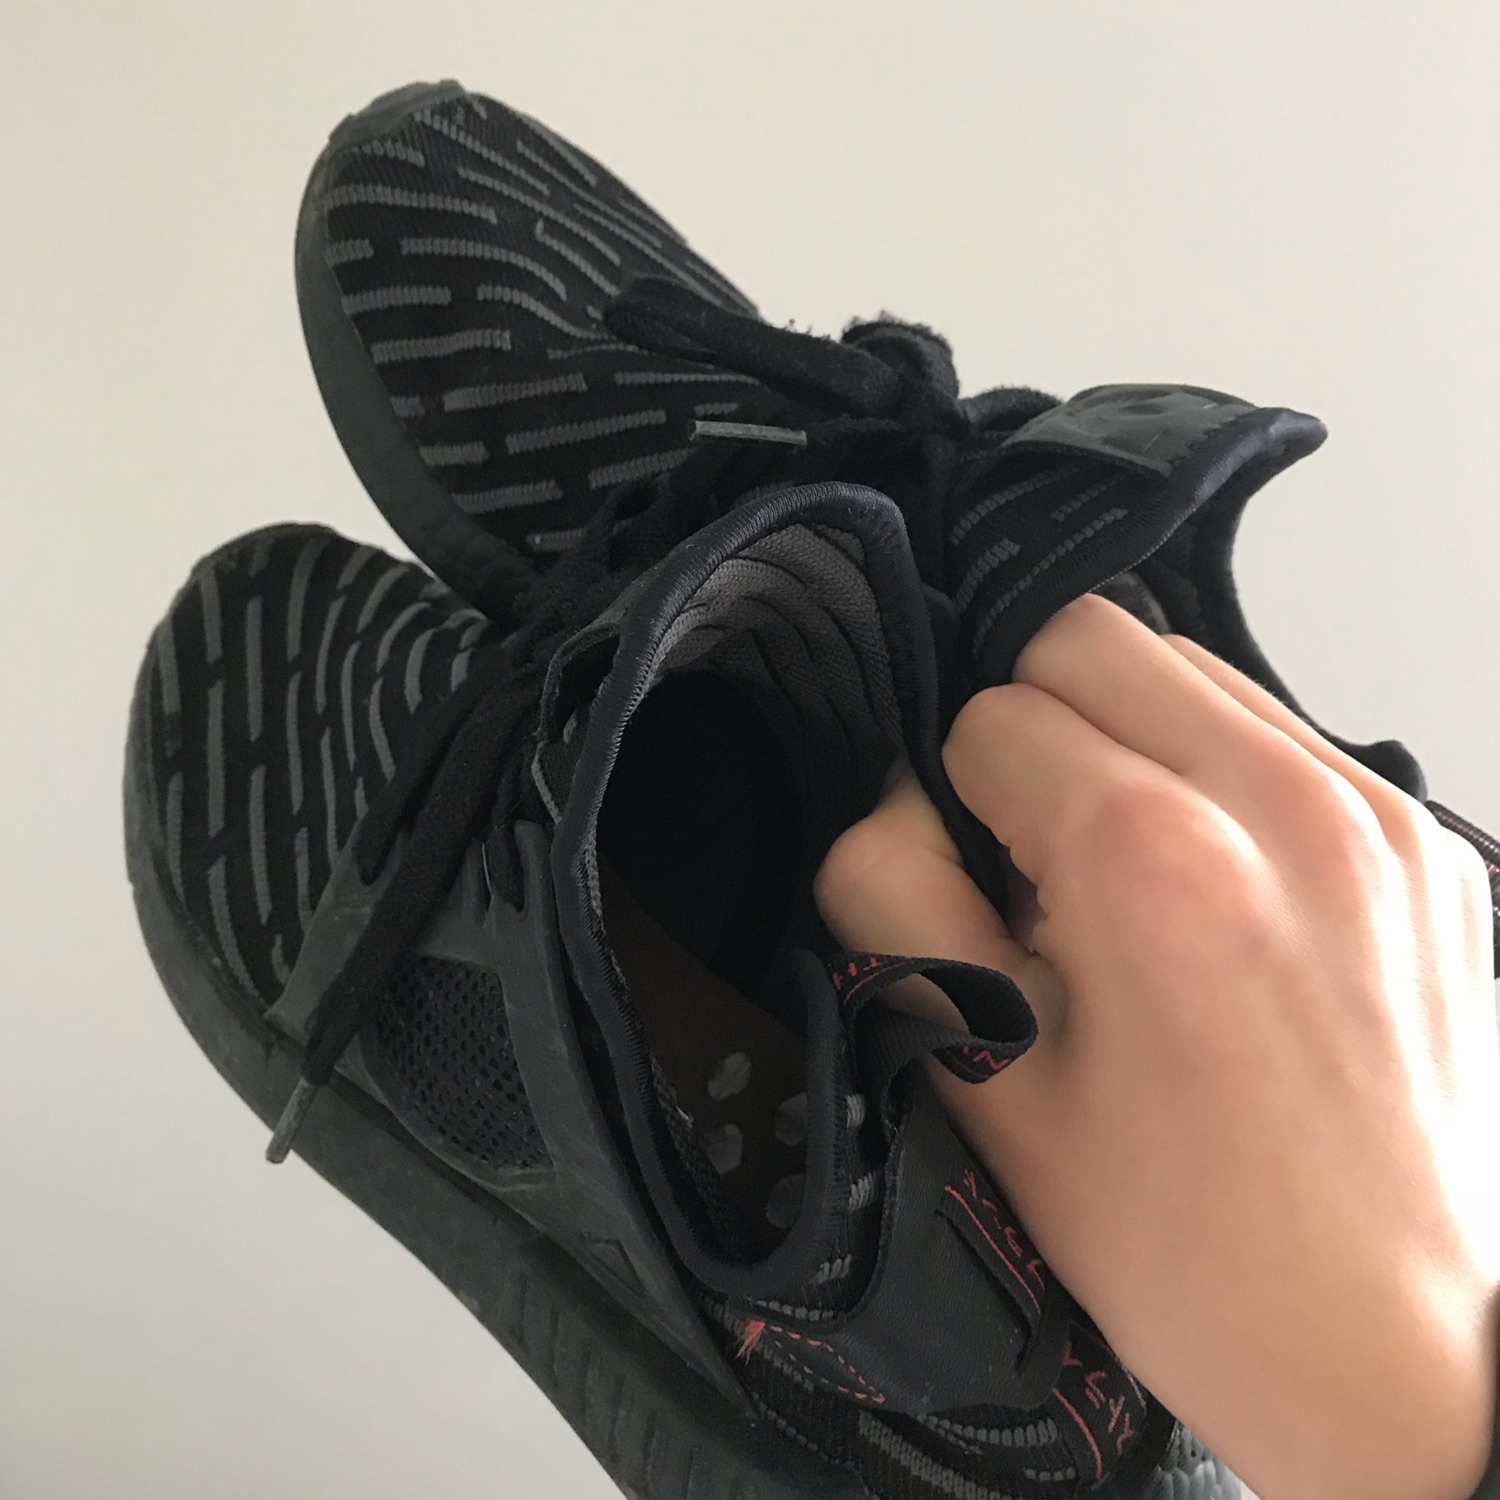 ca31eea7 Adidas Nmd Xr1 (Triple Black Edition)